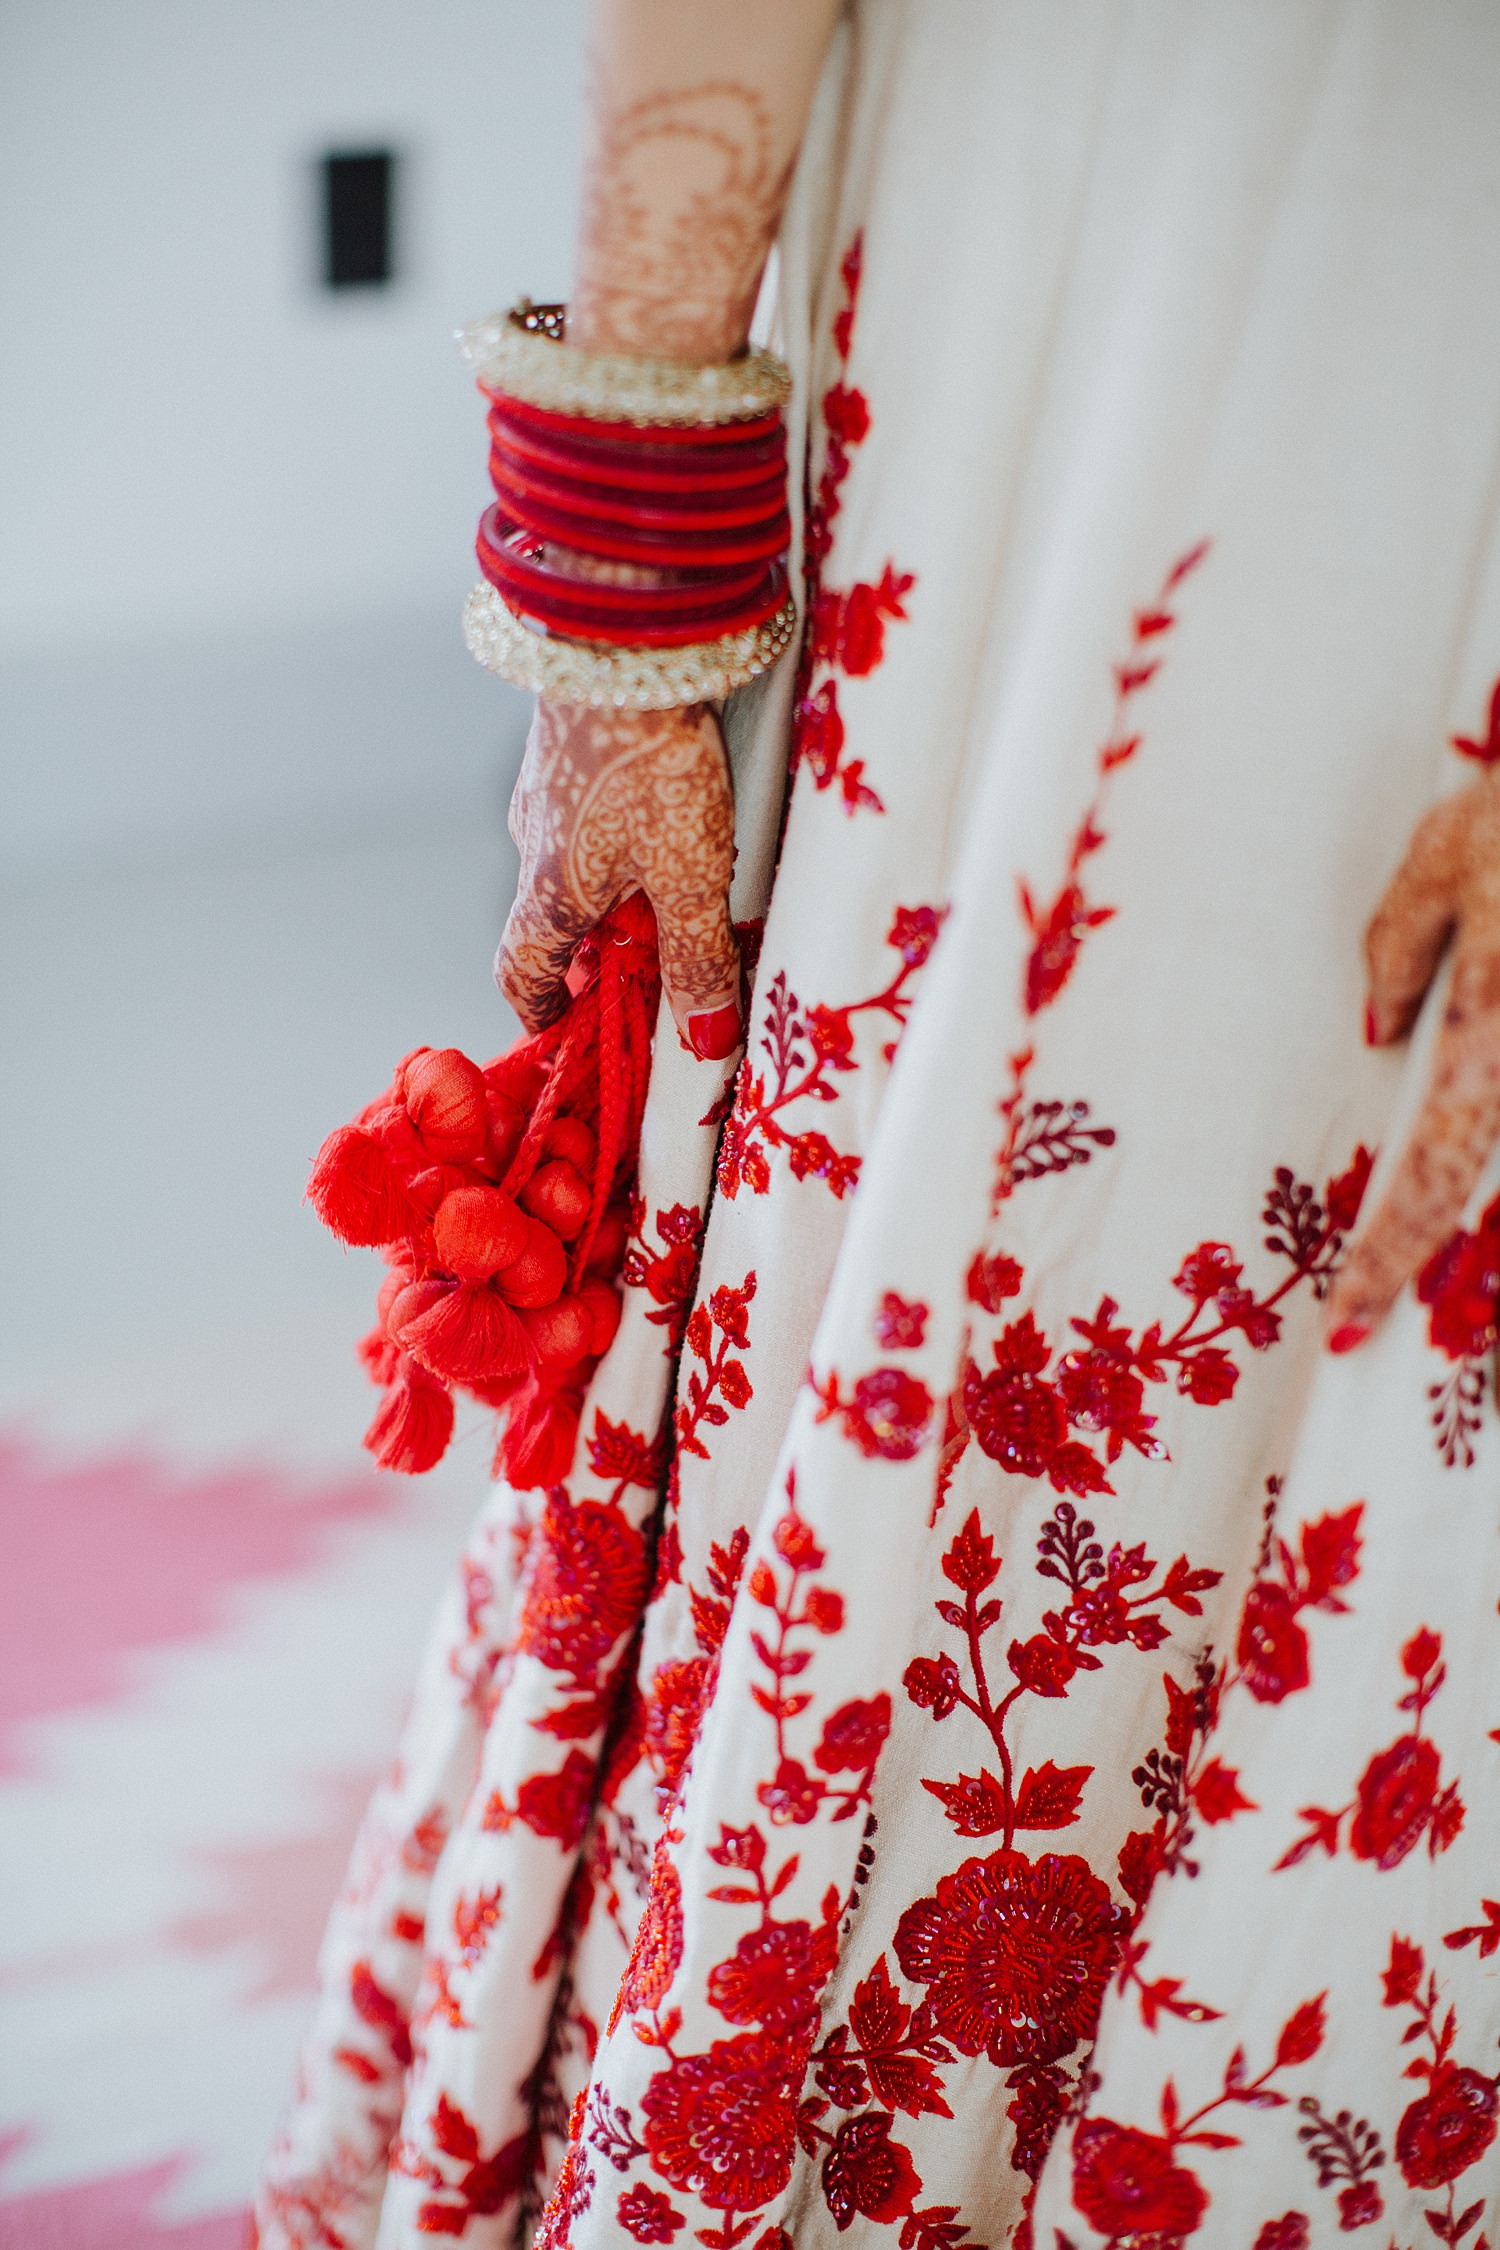 destination,documentary,fine art,flanagan farm,indian,lehenga,maine,new england,portland,sarah morrill,sari,wedding,